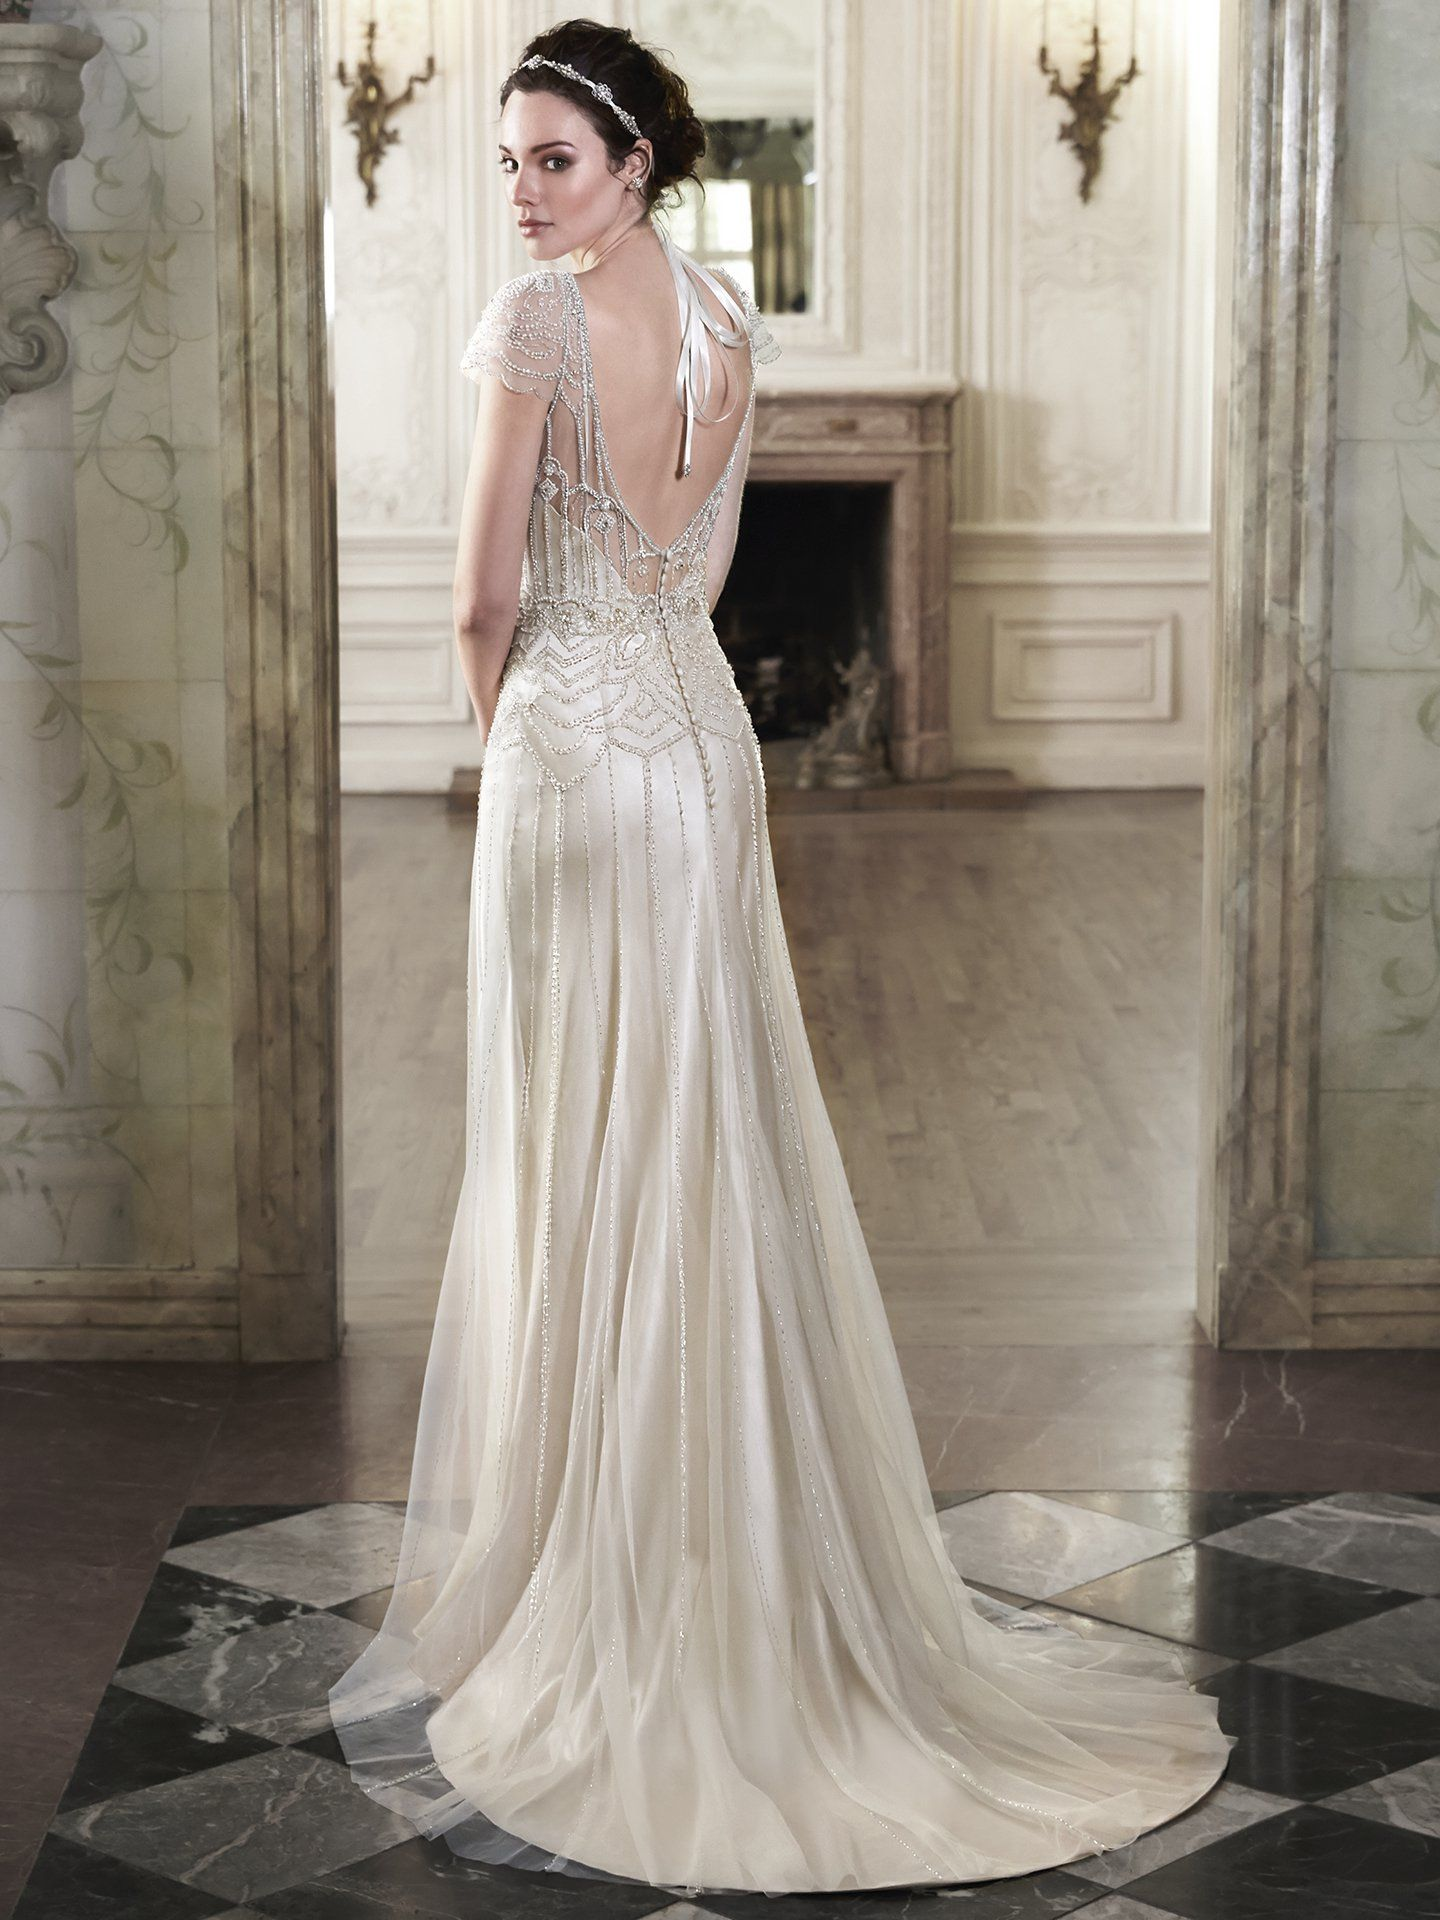 ETTIA by Maggie Sottero Wedding Dresses | Maggie Sottero | Pinterest ...